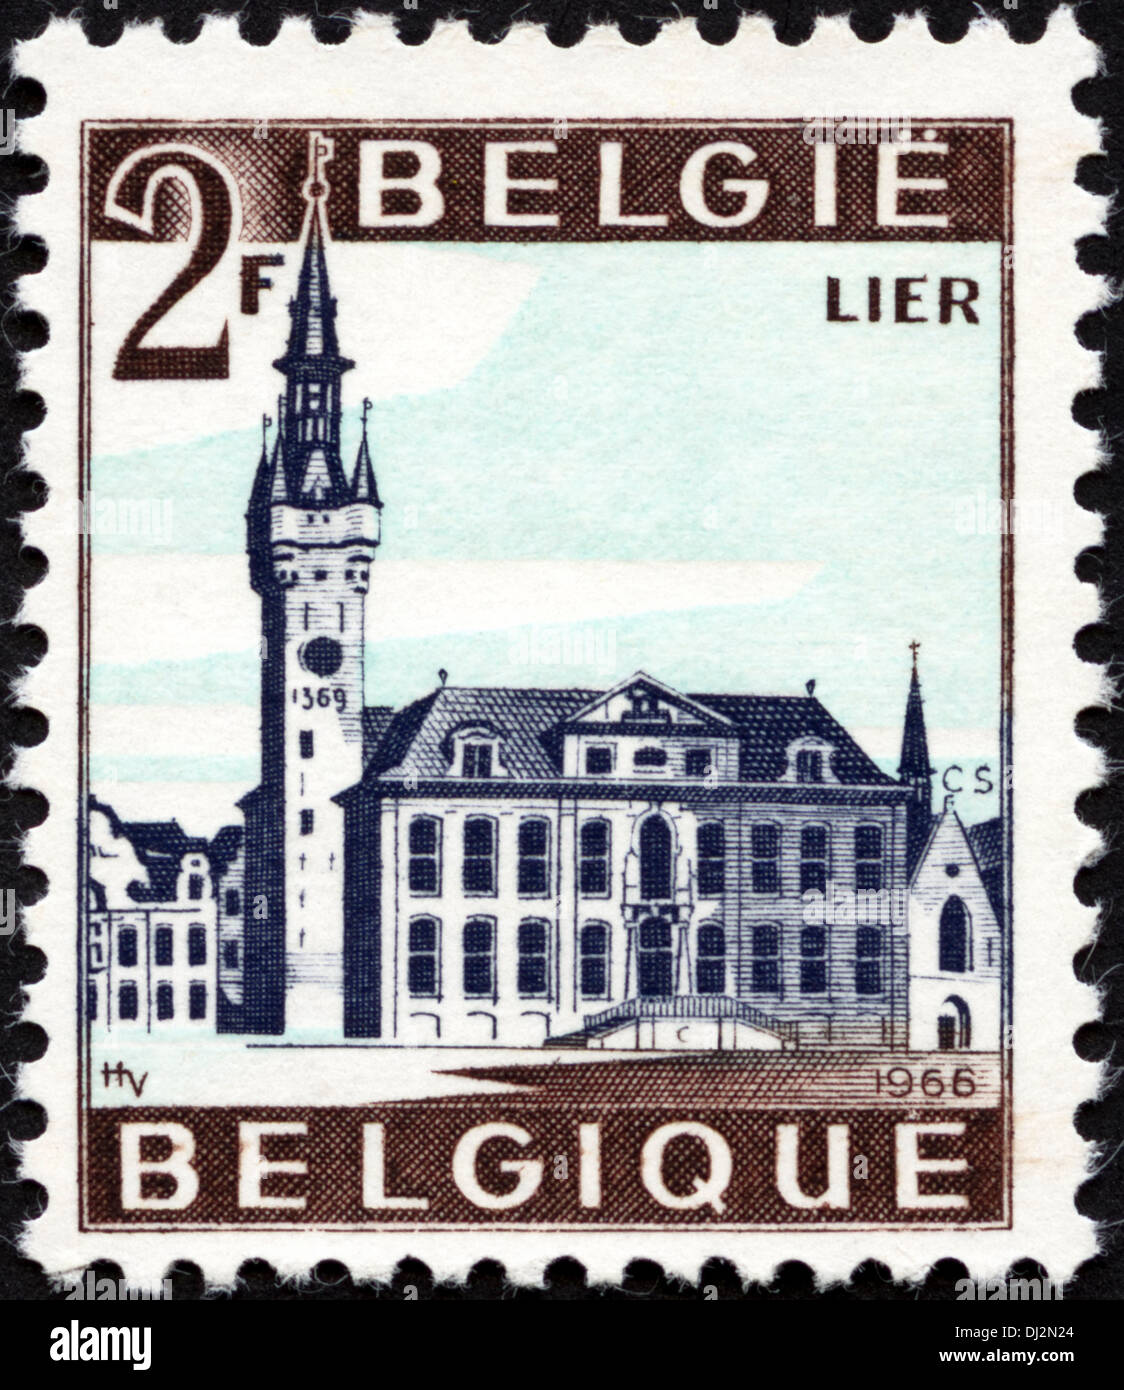 postage stamp Belgium 2F featuring the town of Lier dated 1966 - Stock Image